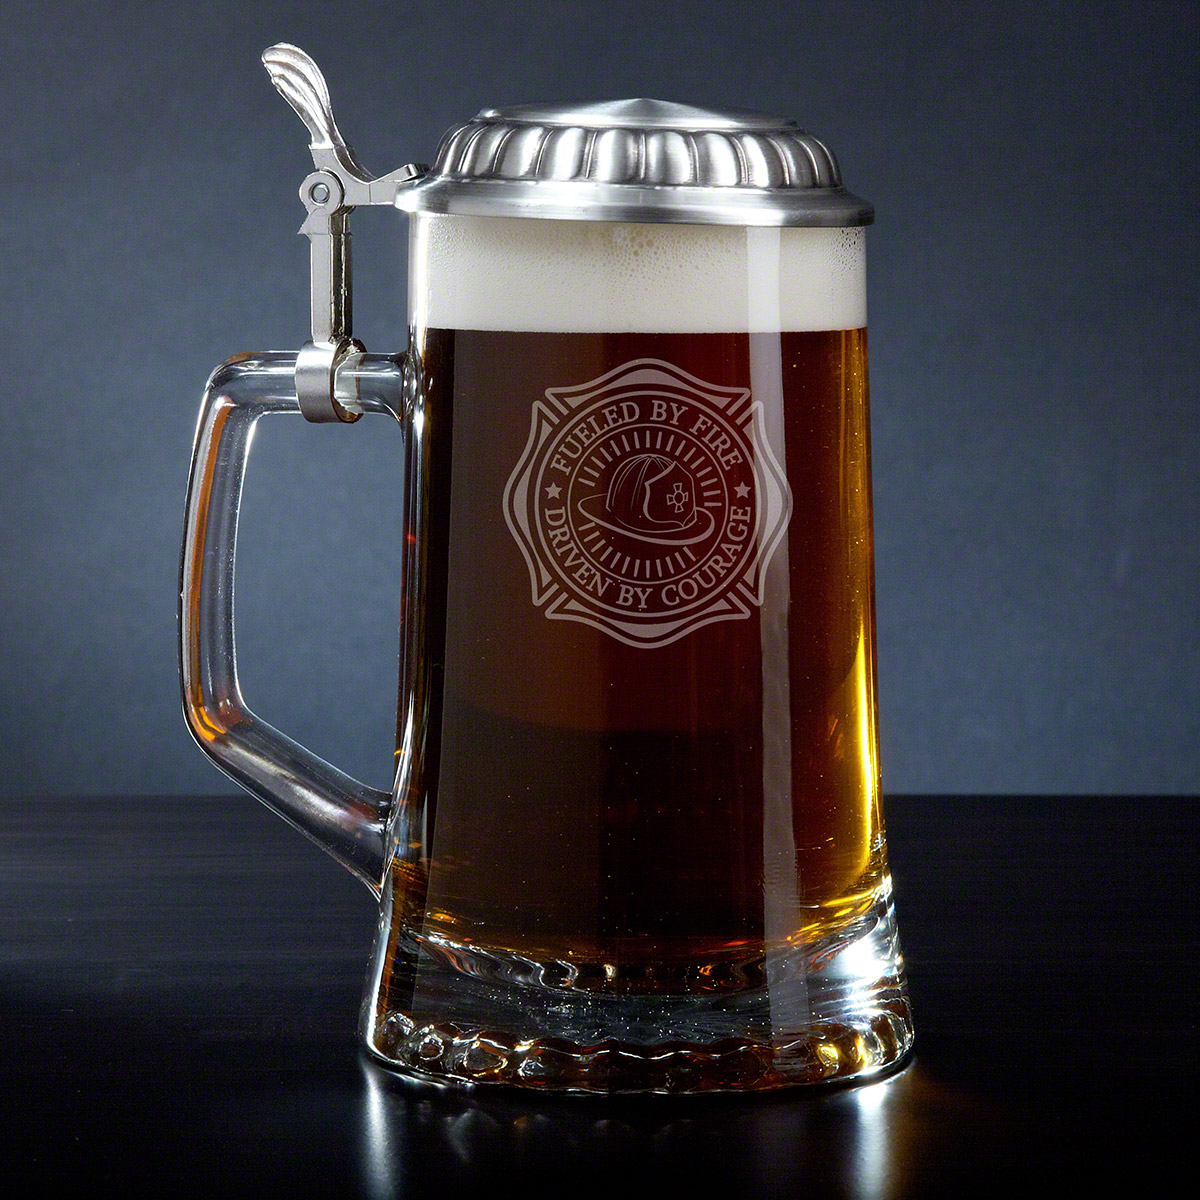 Fueled By Fire Beer Stein for Firefighters